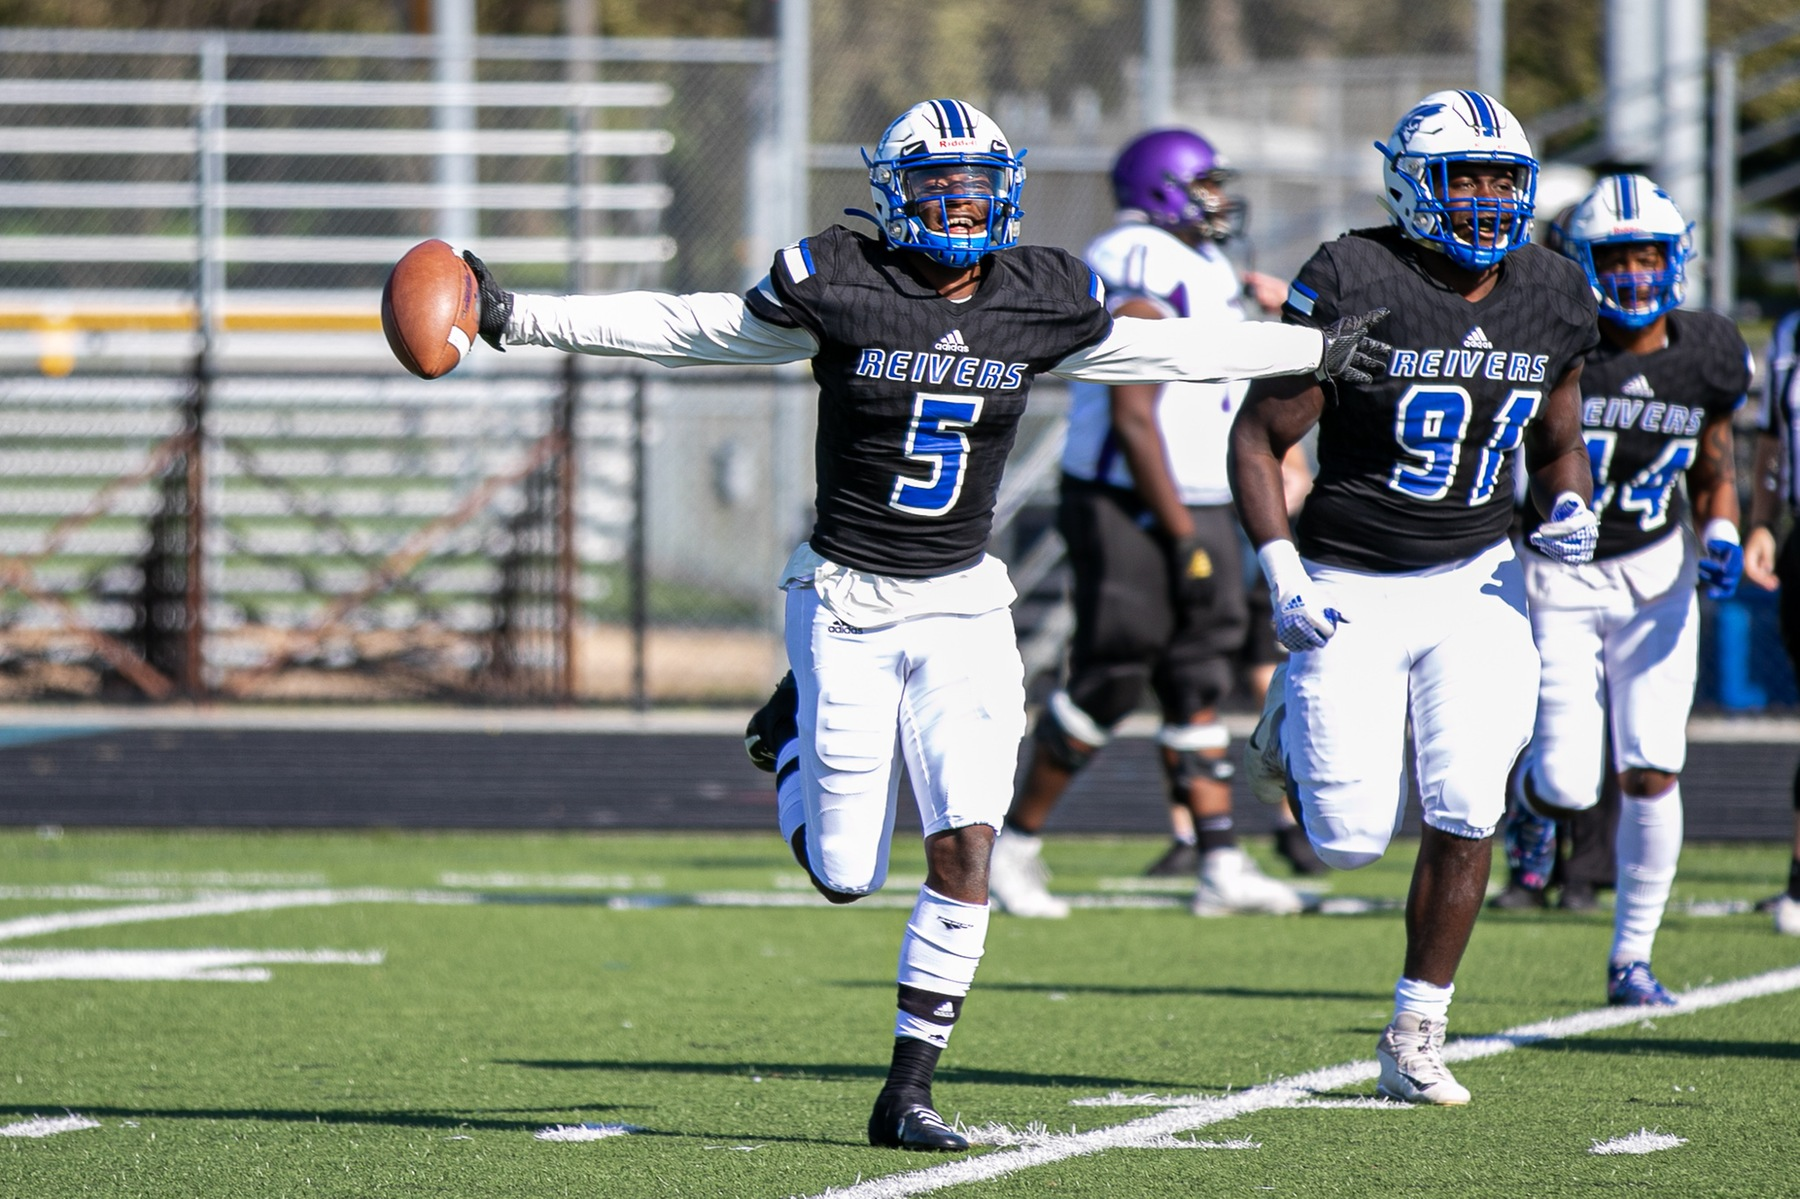 Reivers Defense Takes Center Stage in Homecoming Rout